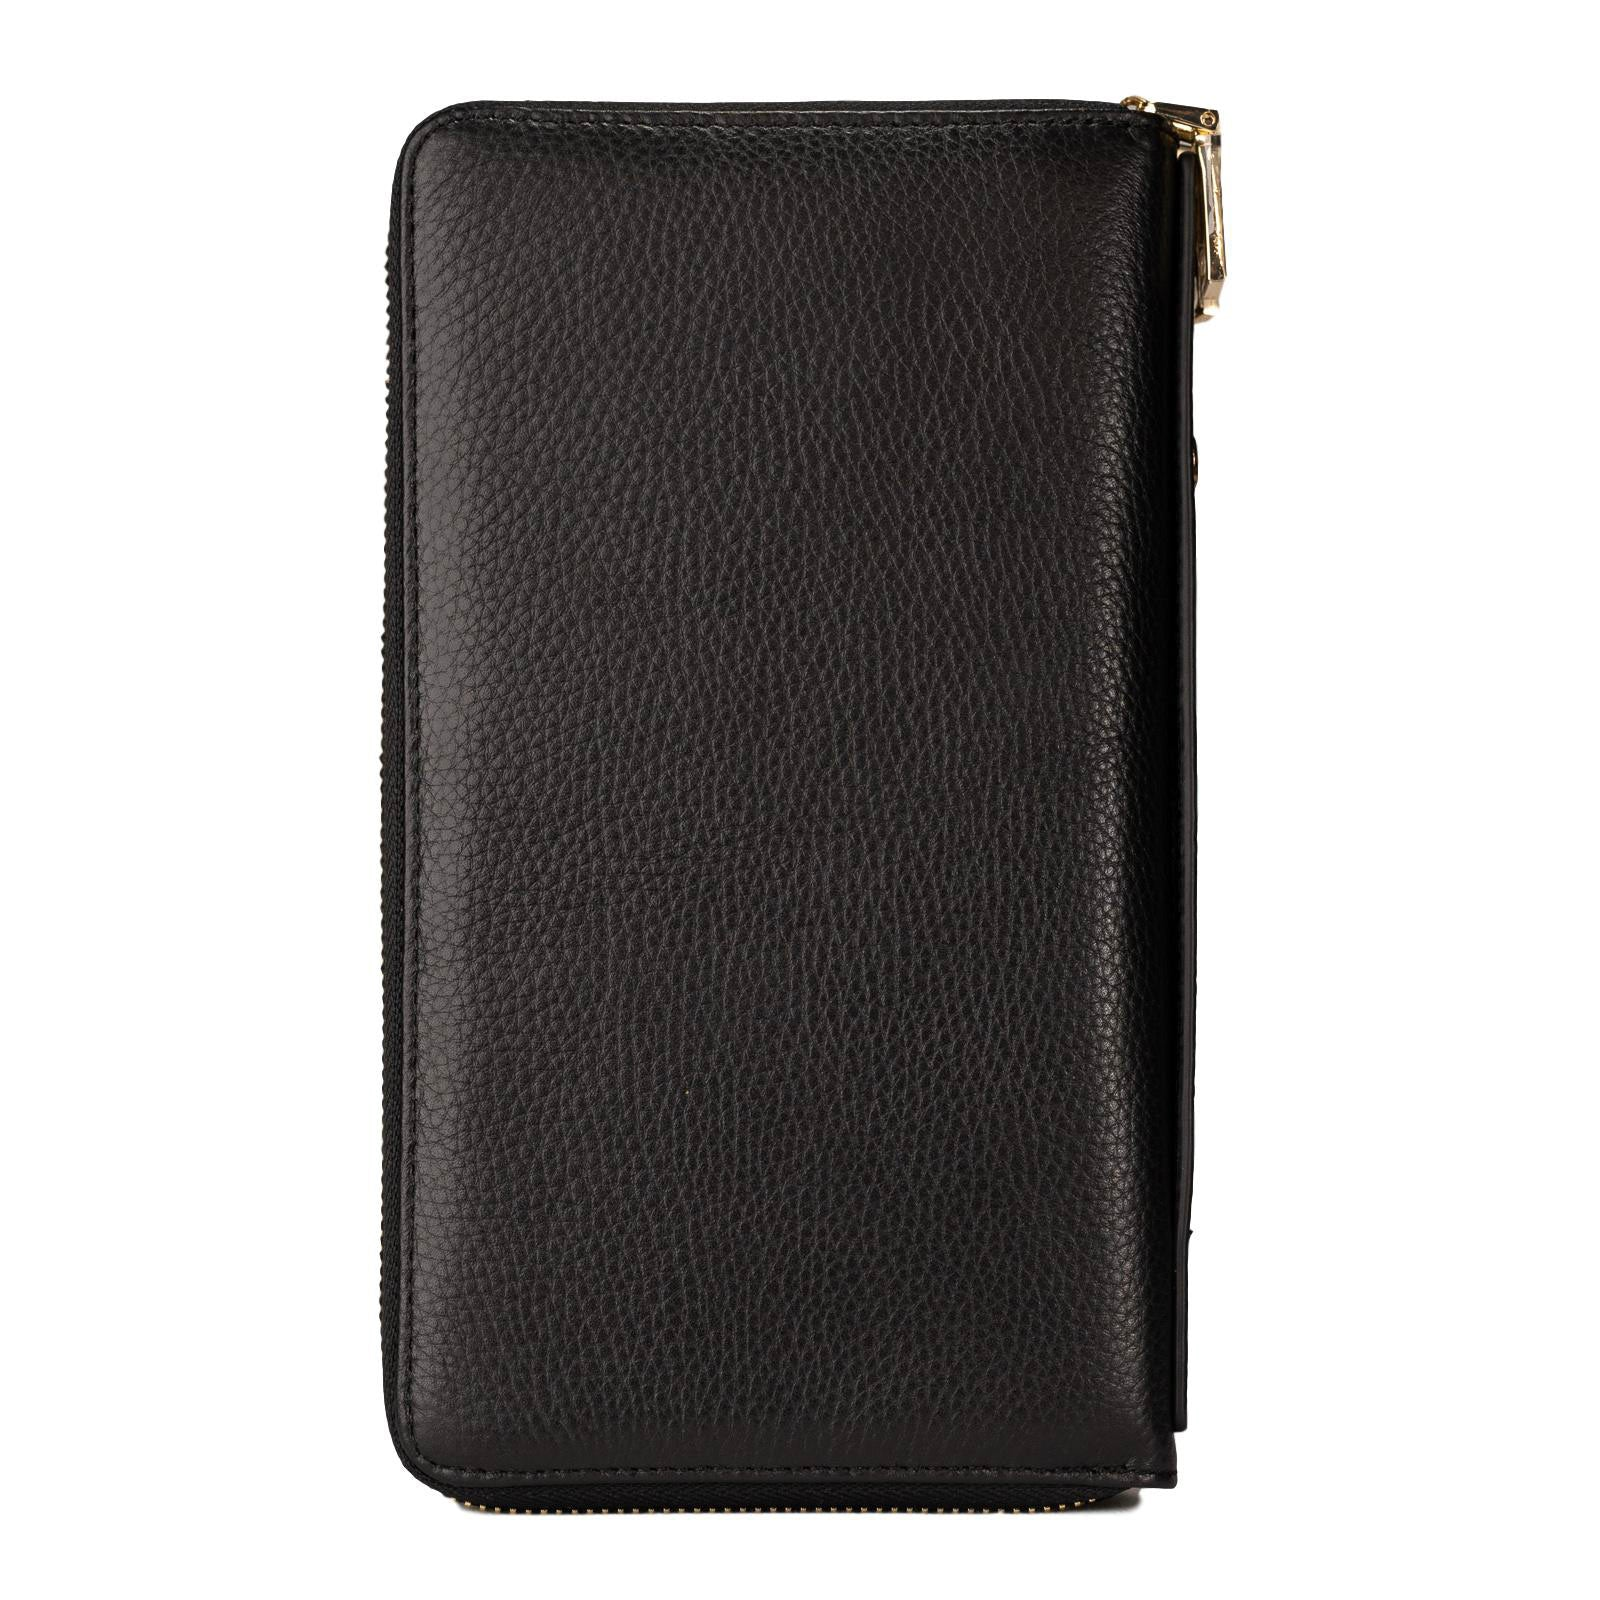 Mon Purse Pebbled Double Zip Travel Wallet in Black